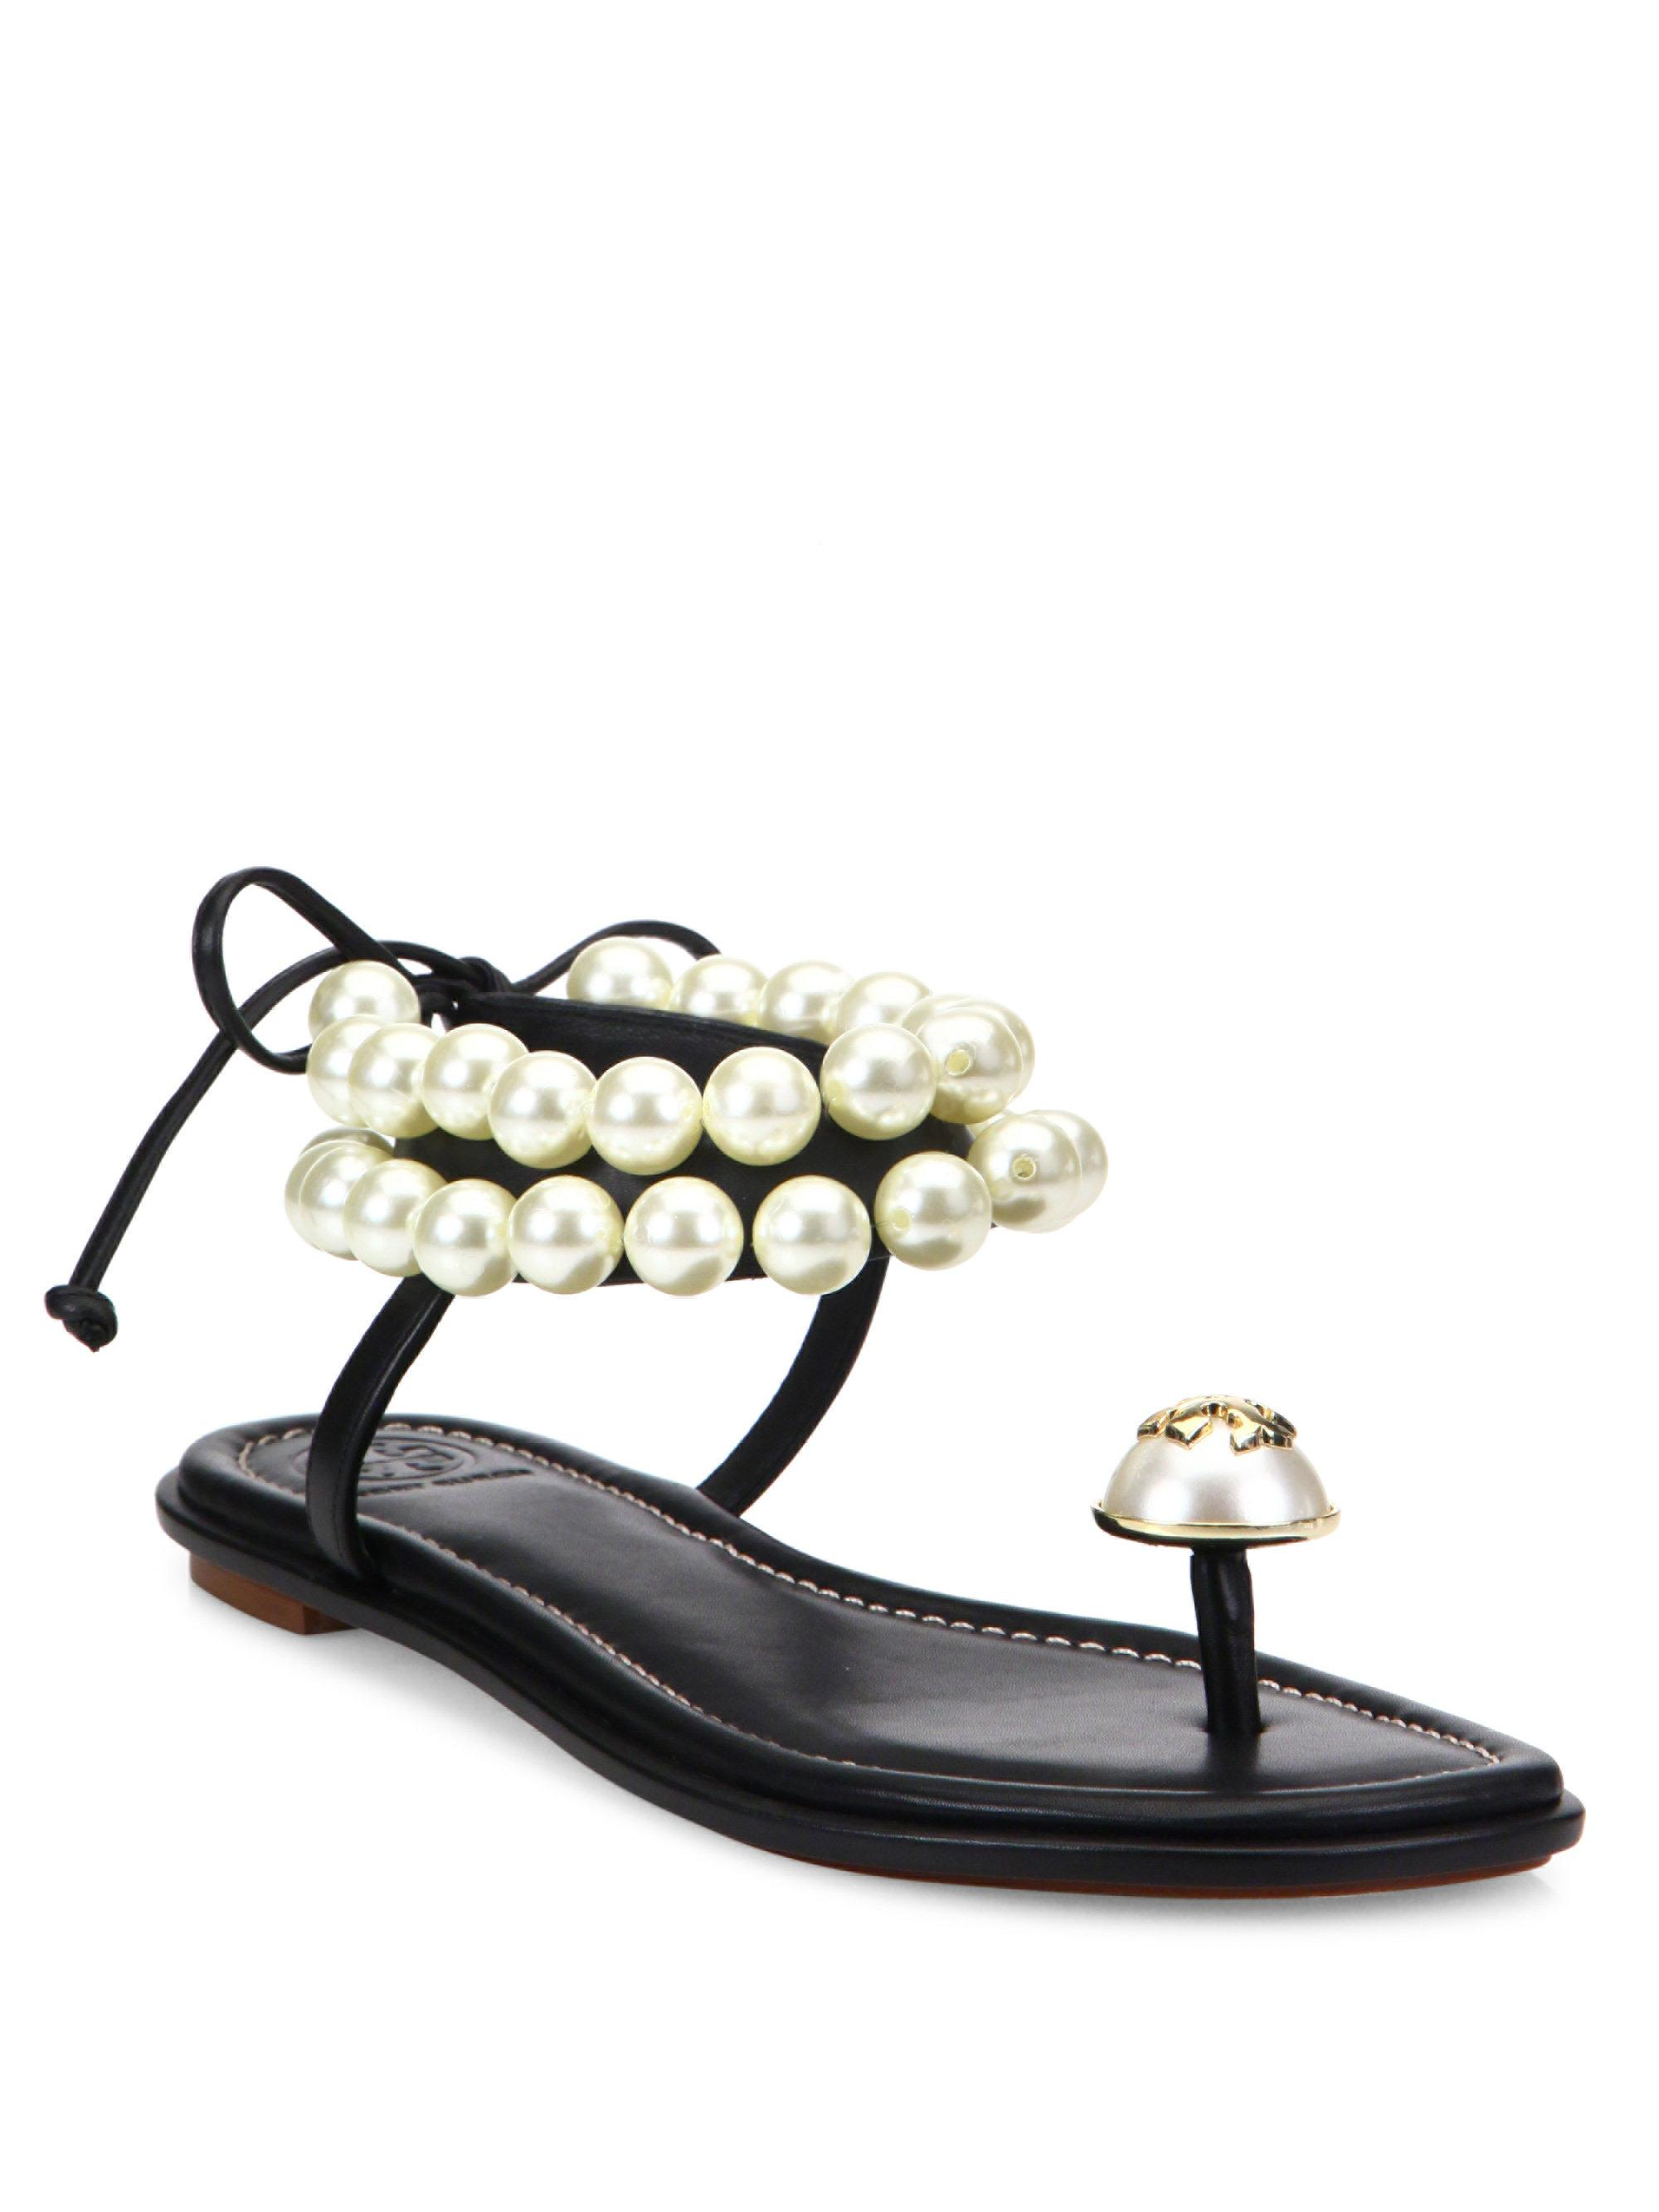 e30c080d0f68 Tory Burch Melody Pearly Ankle-wrap Flat Sandal in Black - Lyst